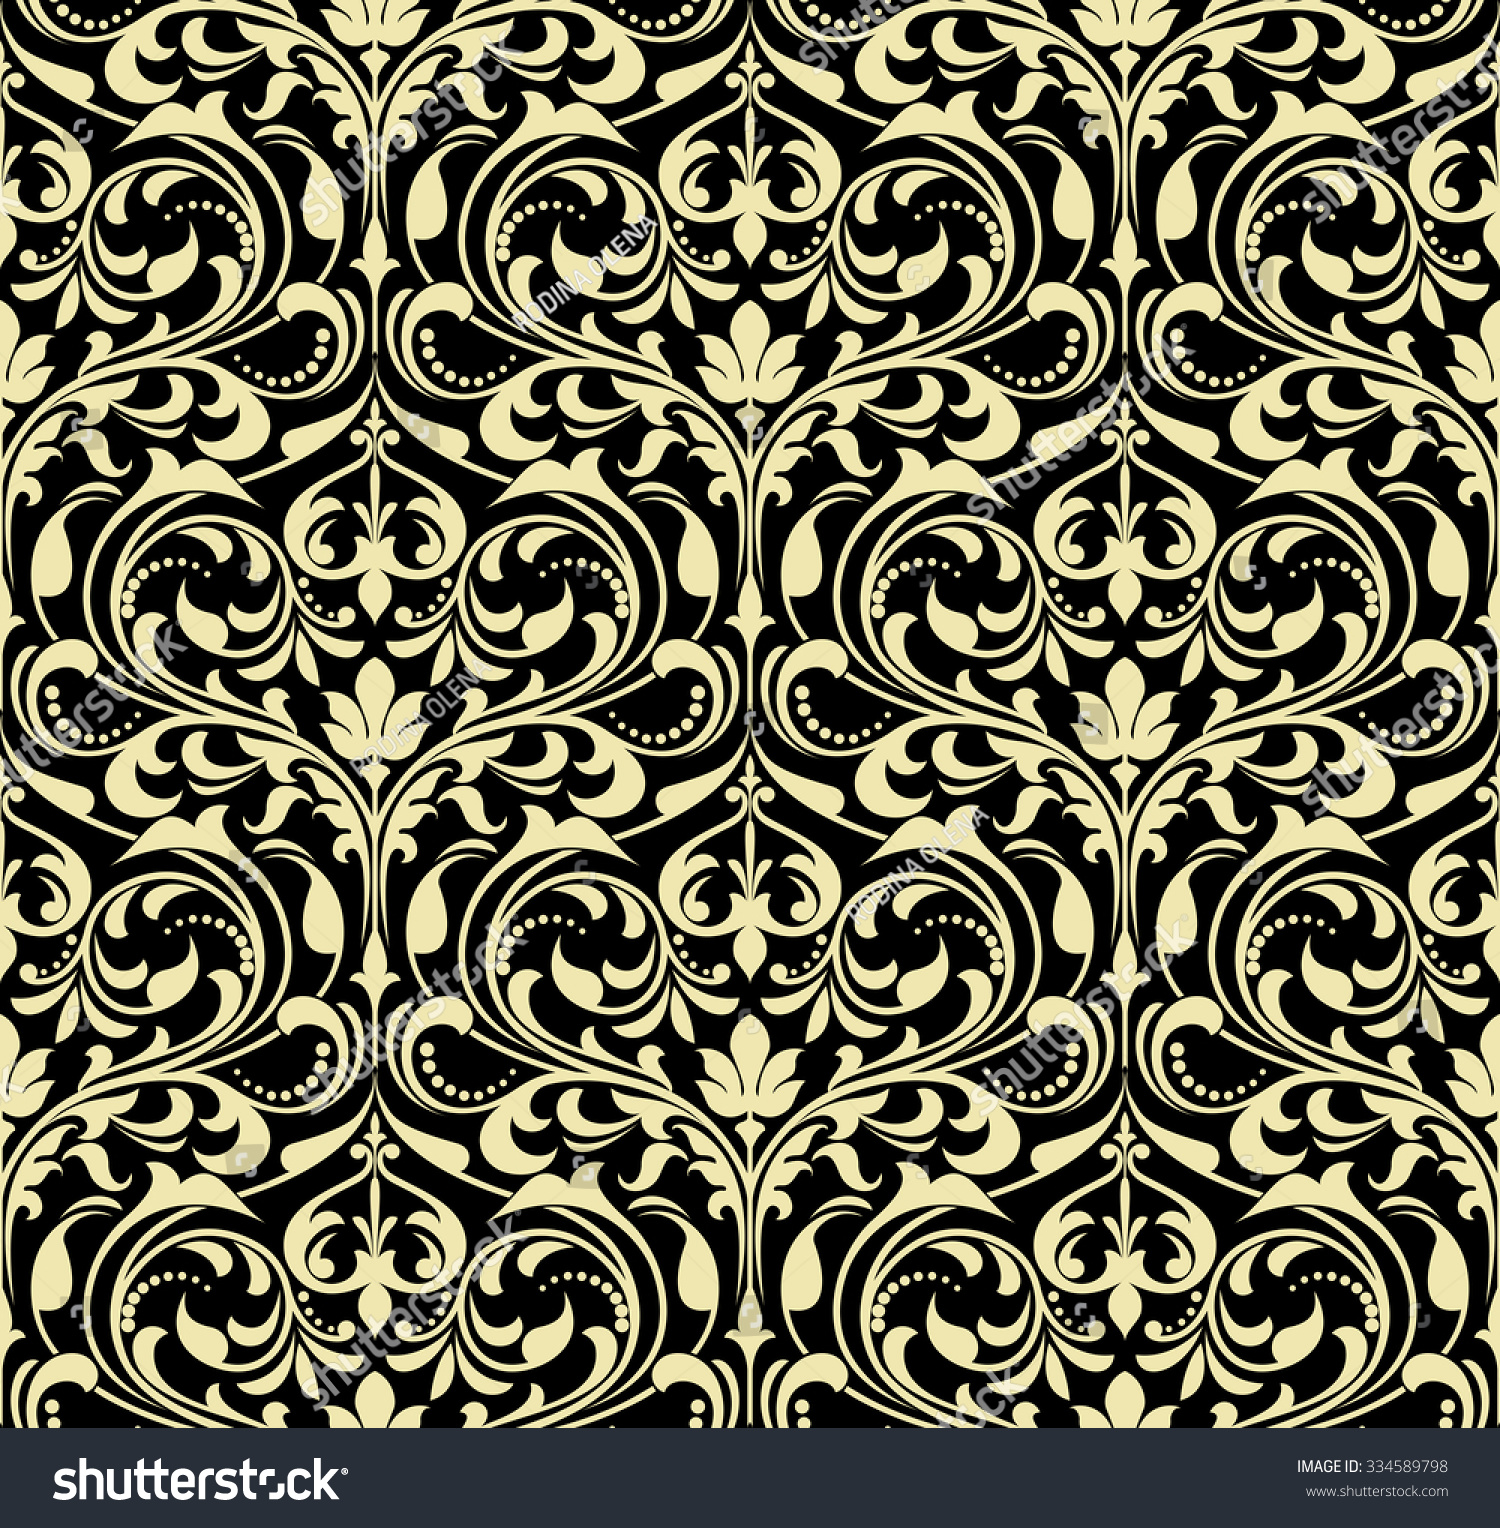 Black and gold floral wallpaper